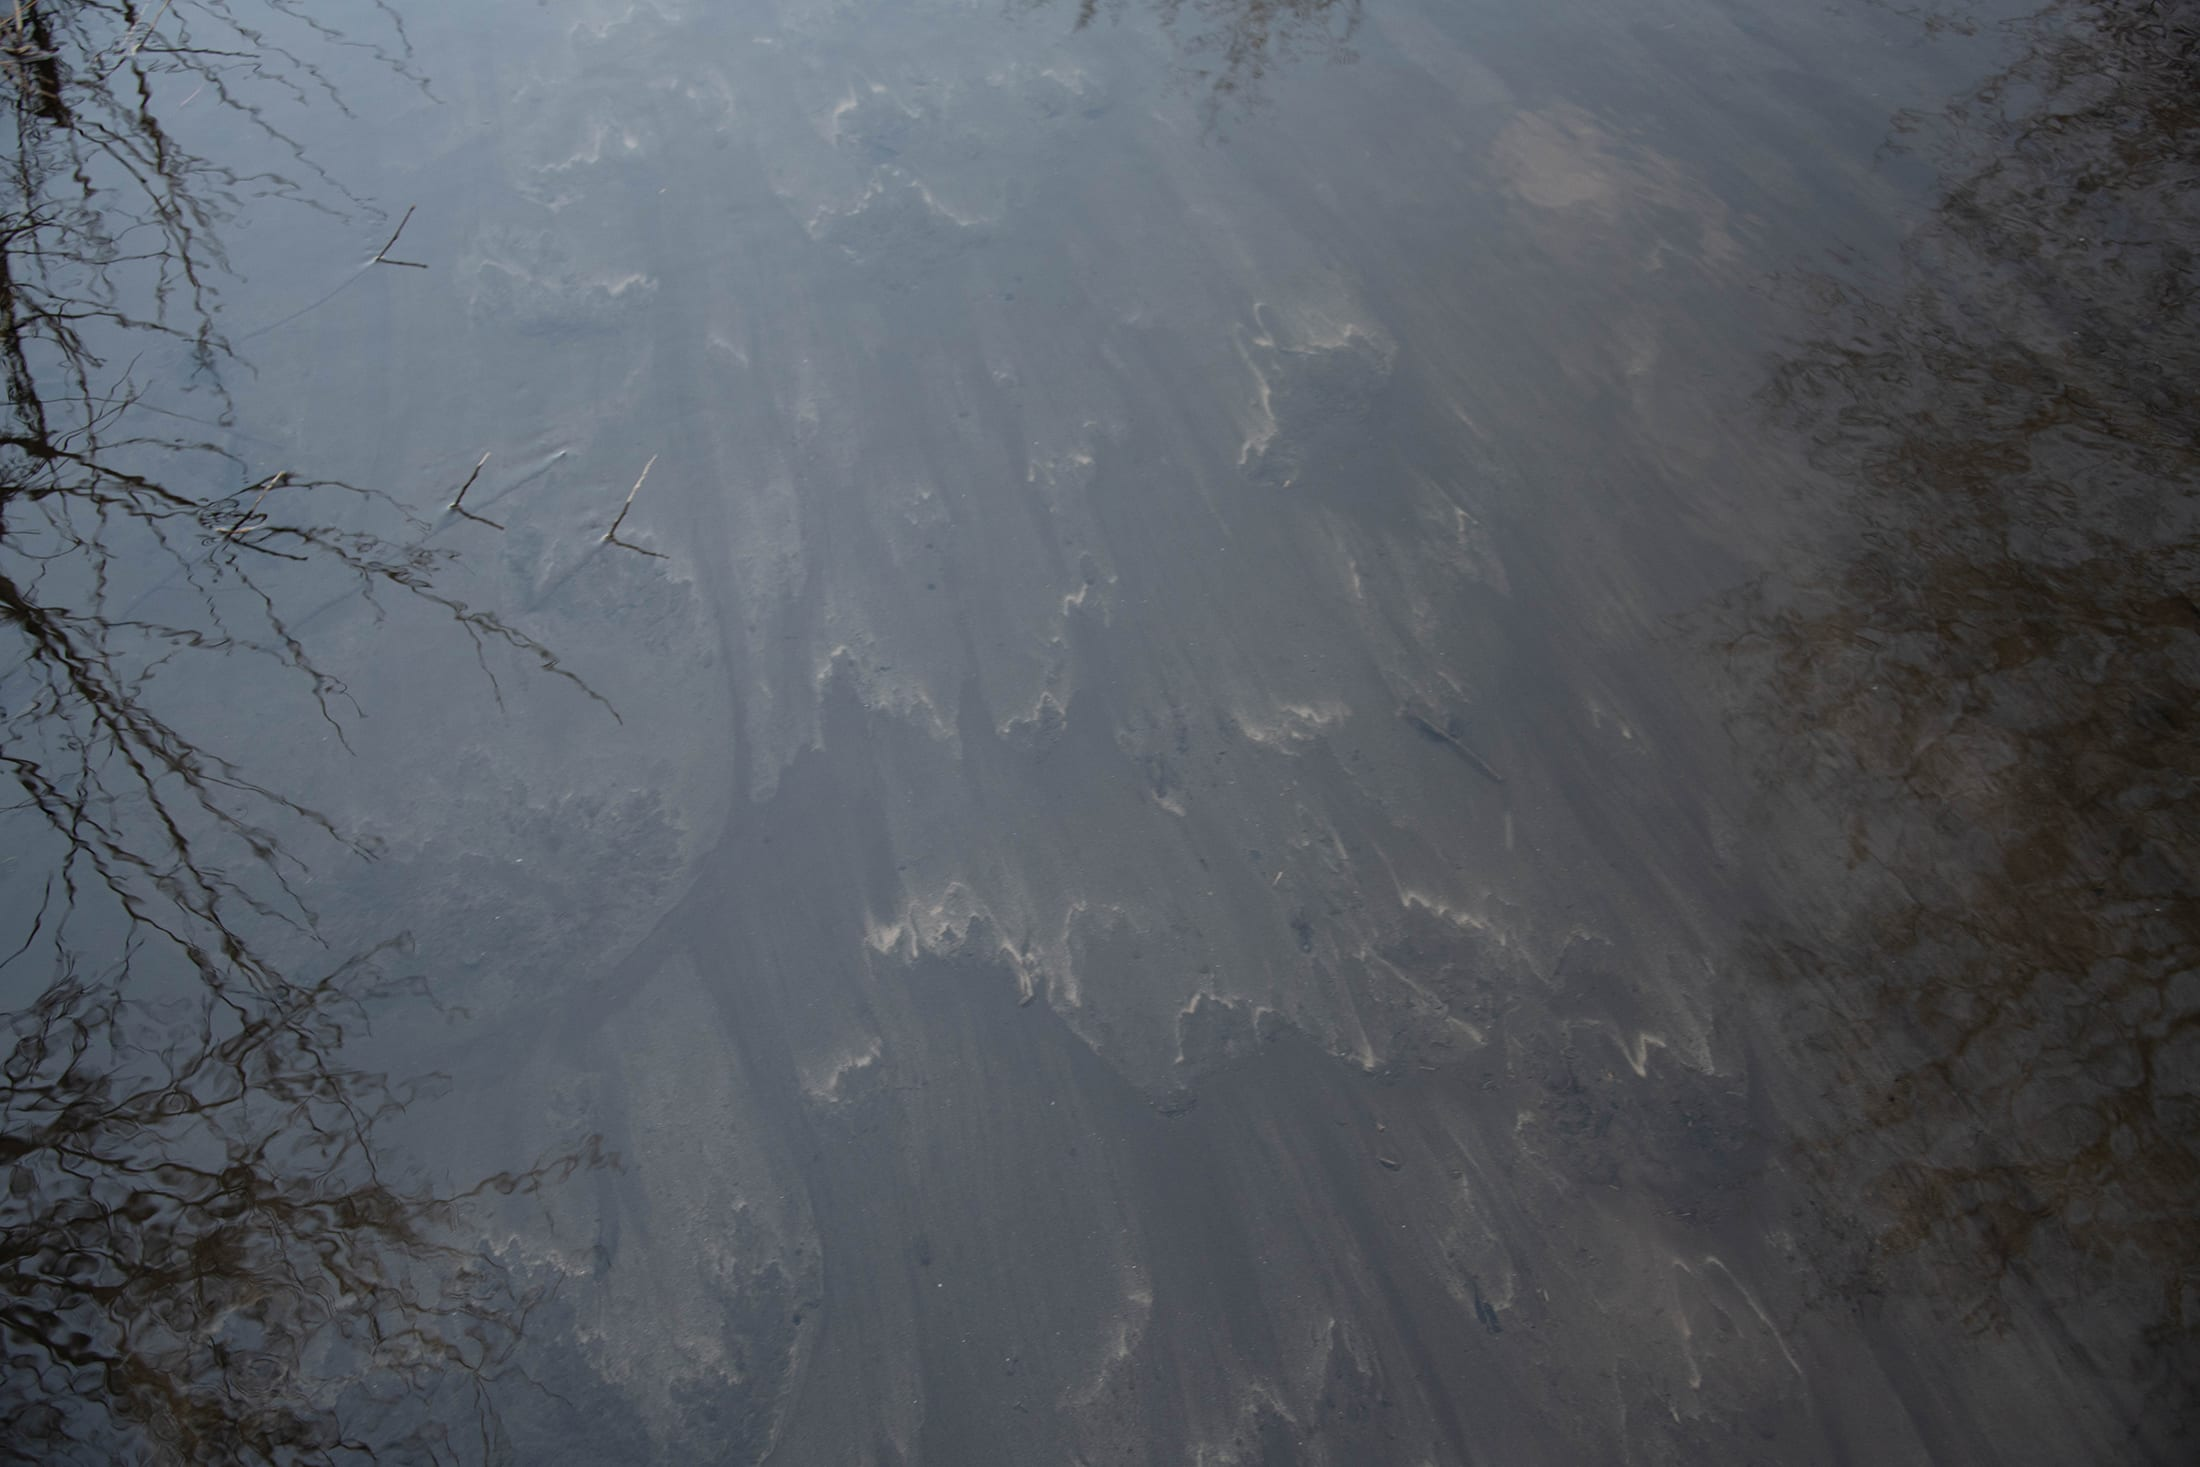 Riverbed with trees reflected in water